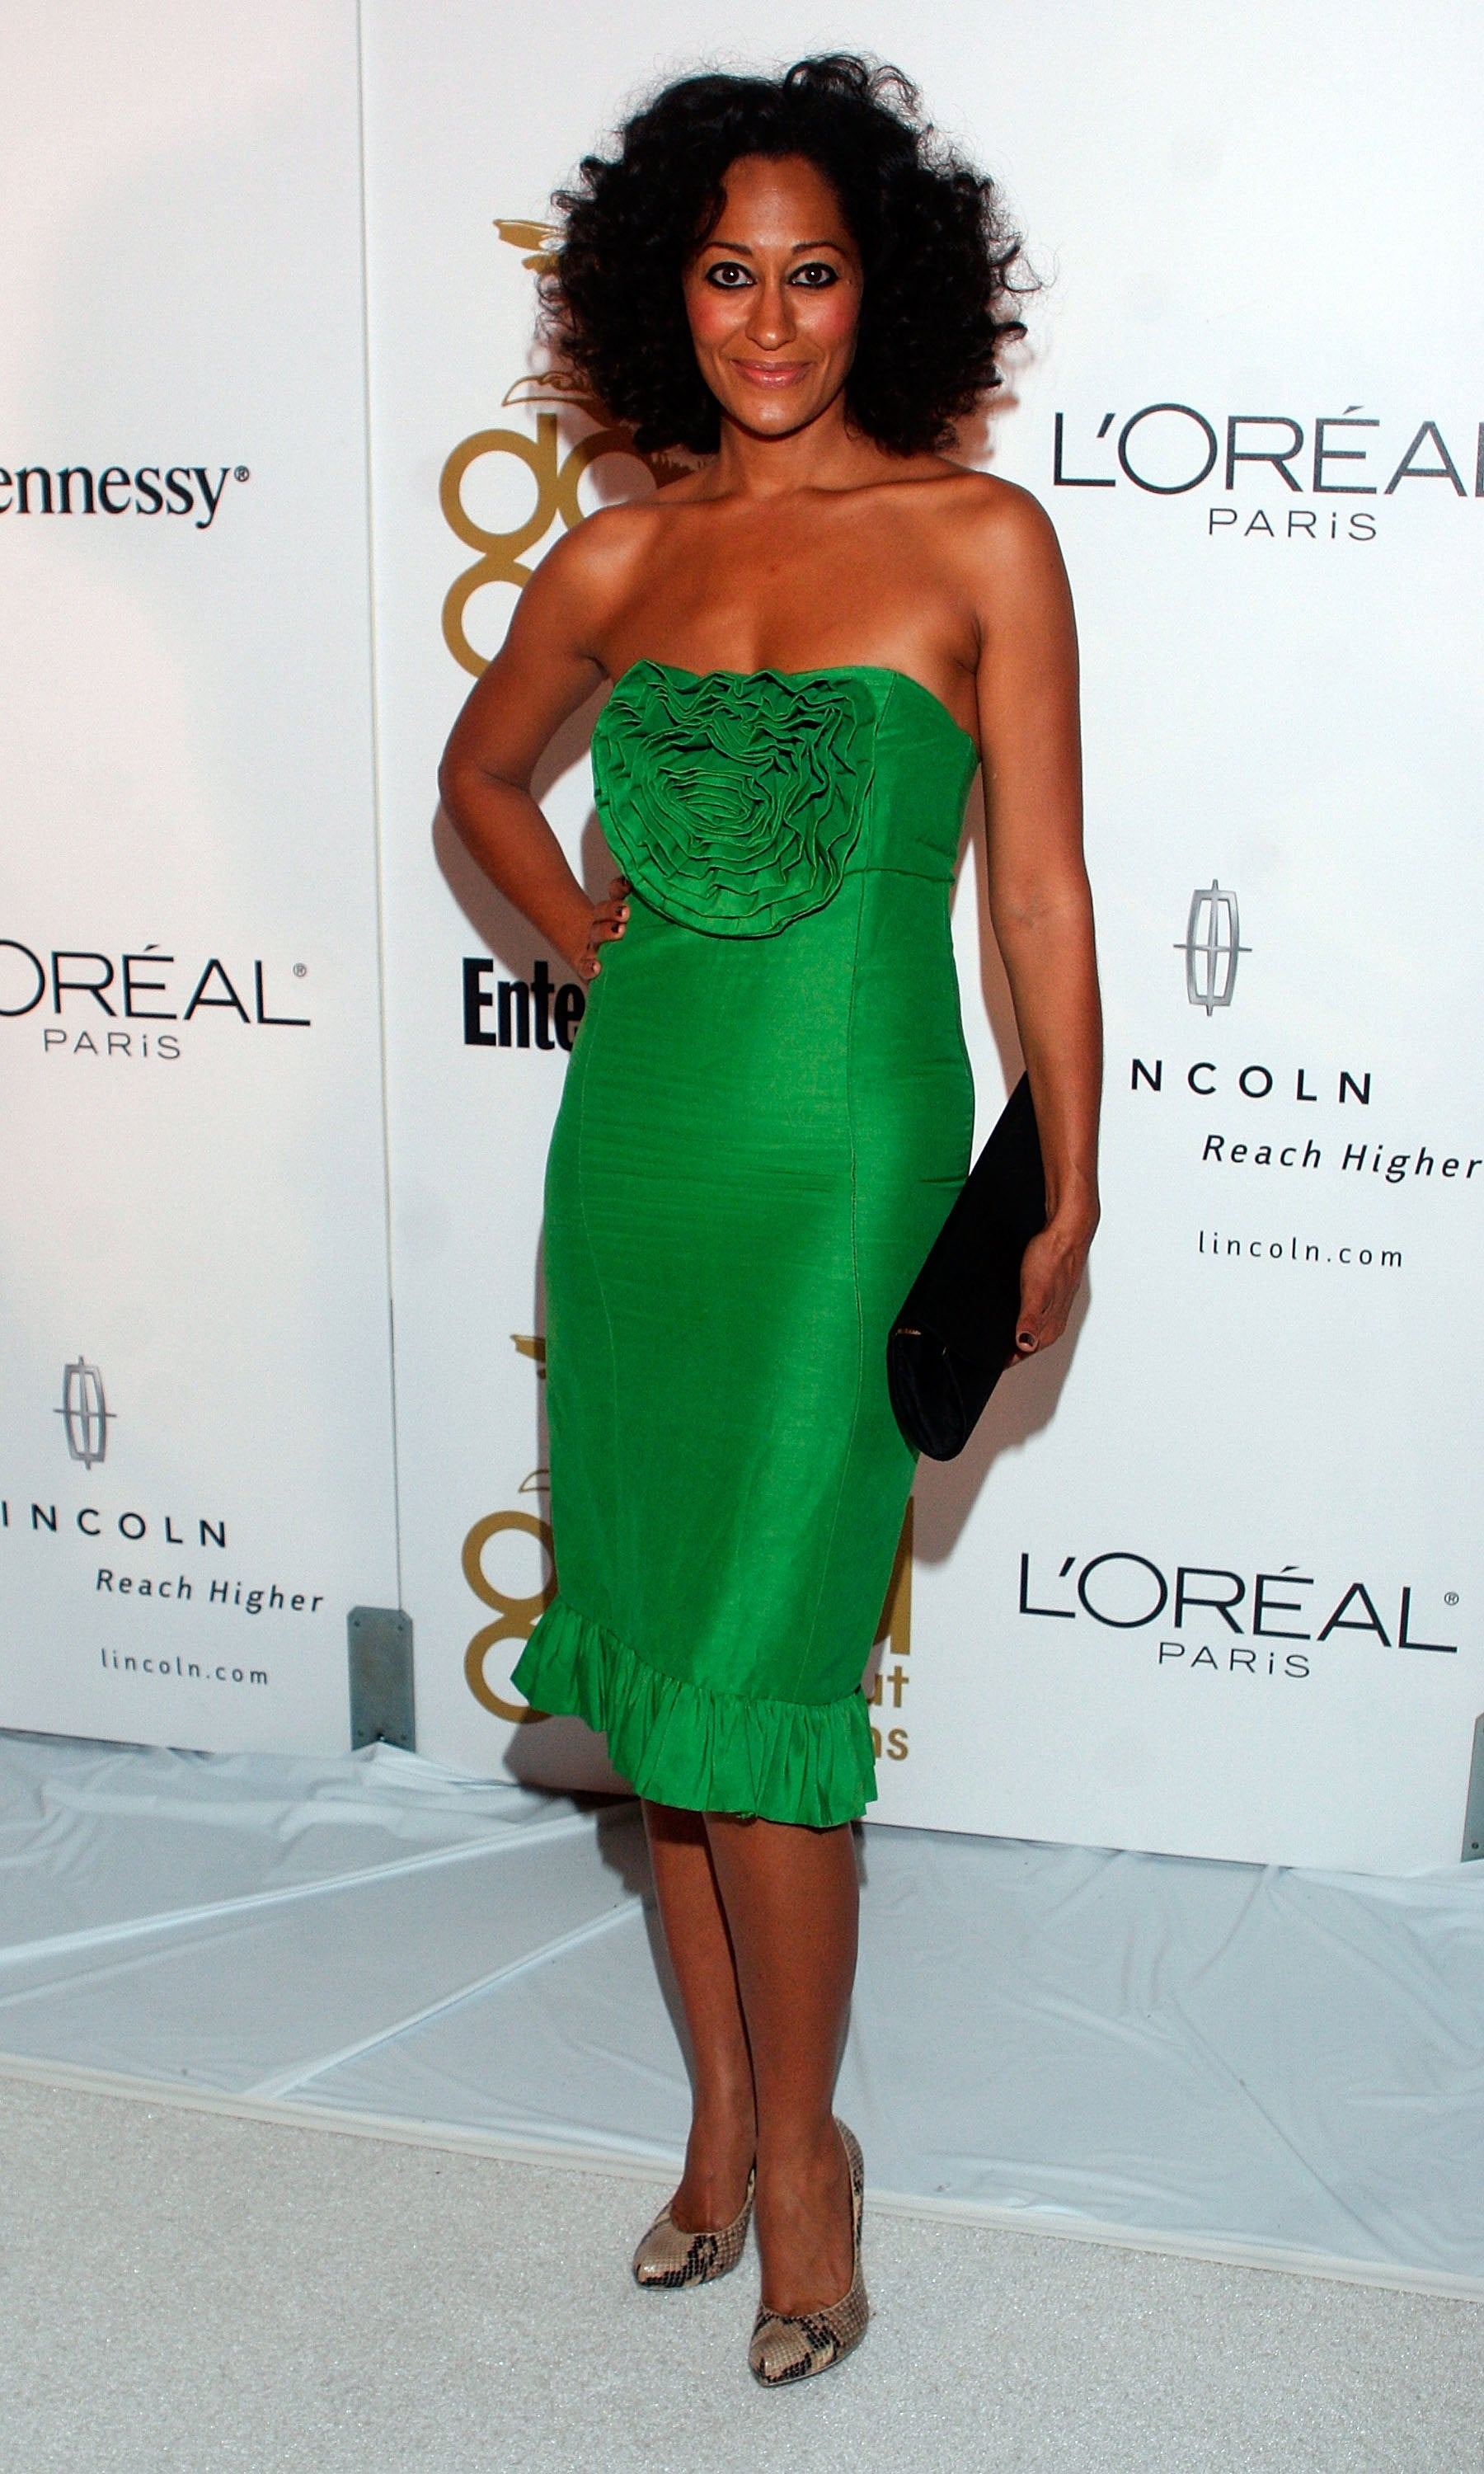 21 Throwback Photos To Prove Tracee Ellis Ross Has Always Been Stylish - Essence-2085